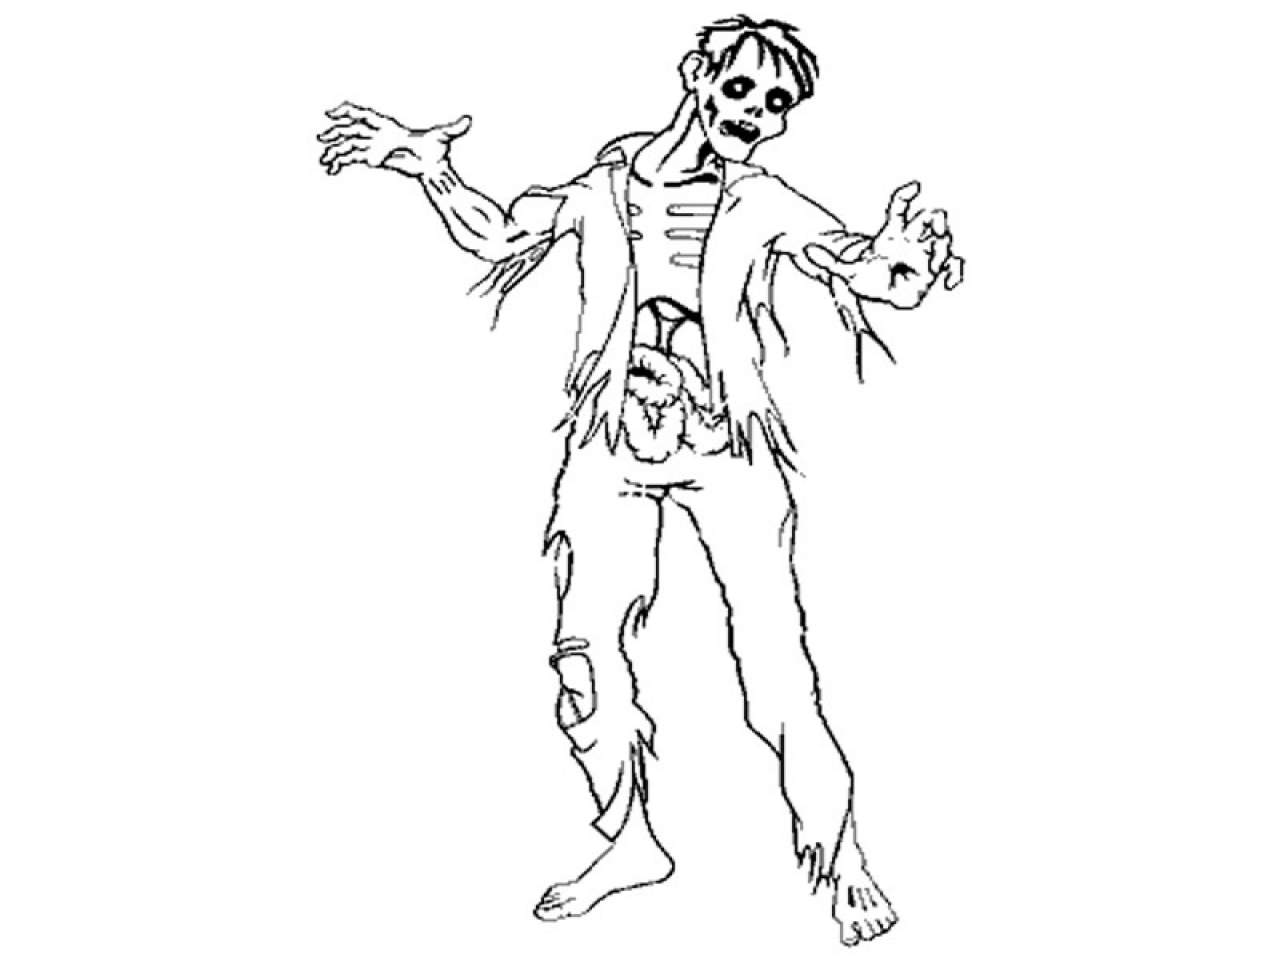 1280x960 Walking Dead Zombie Cartoon Coloring Pages Walking Dead Character